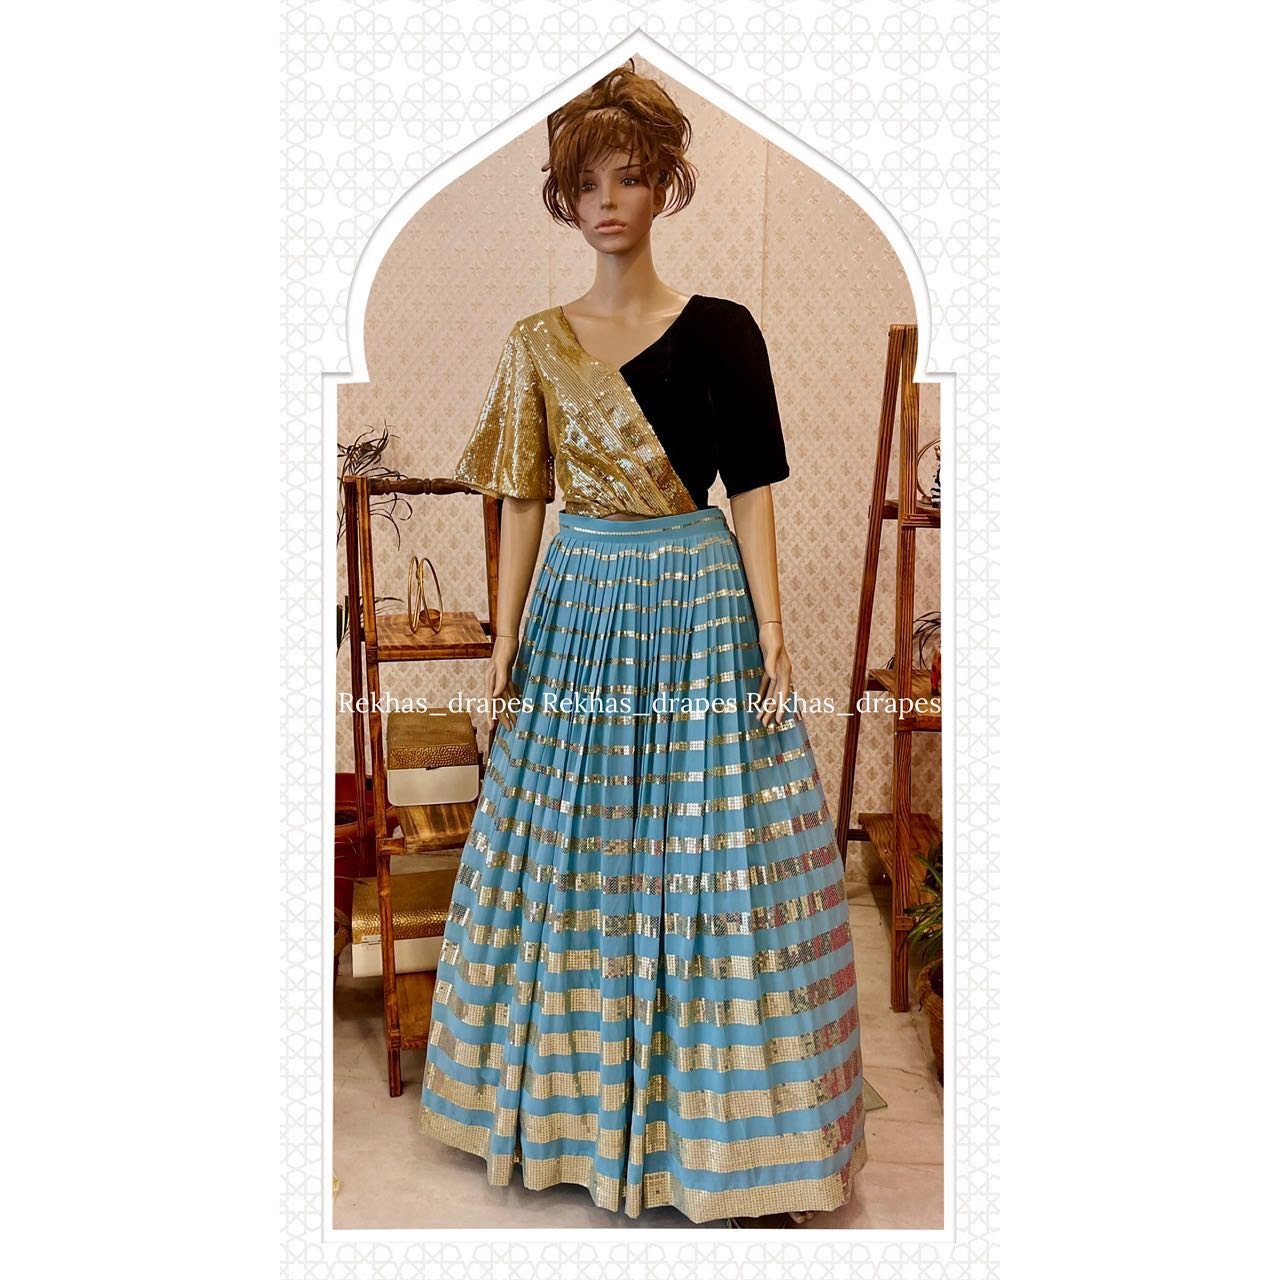 Stunning sky blue color gold striped skirt and crop top. 2021-10-13